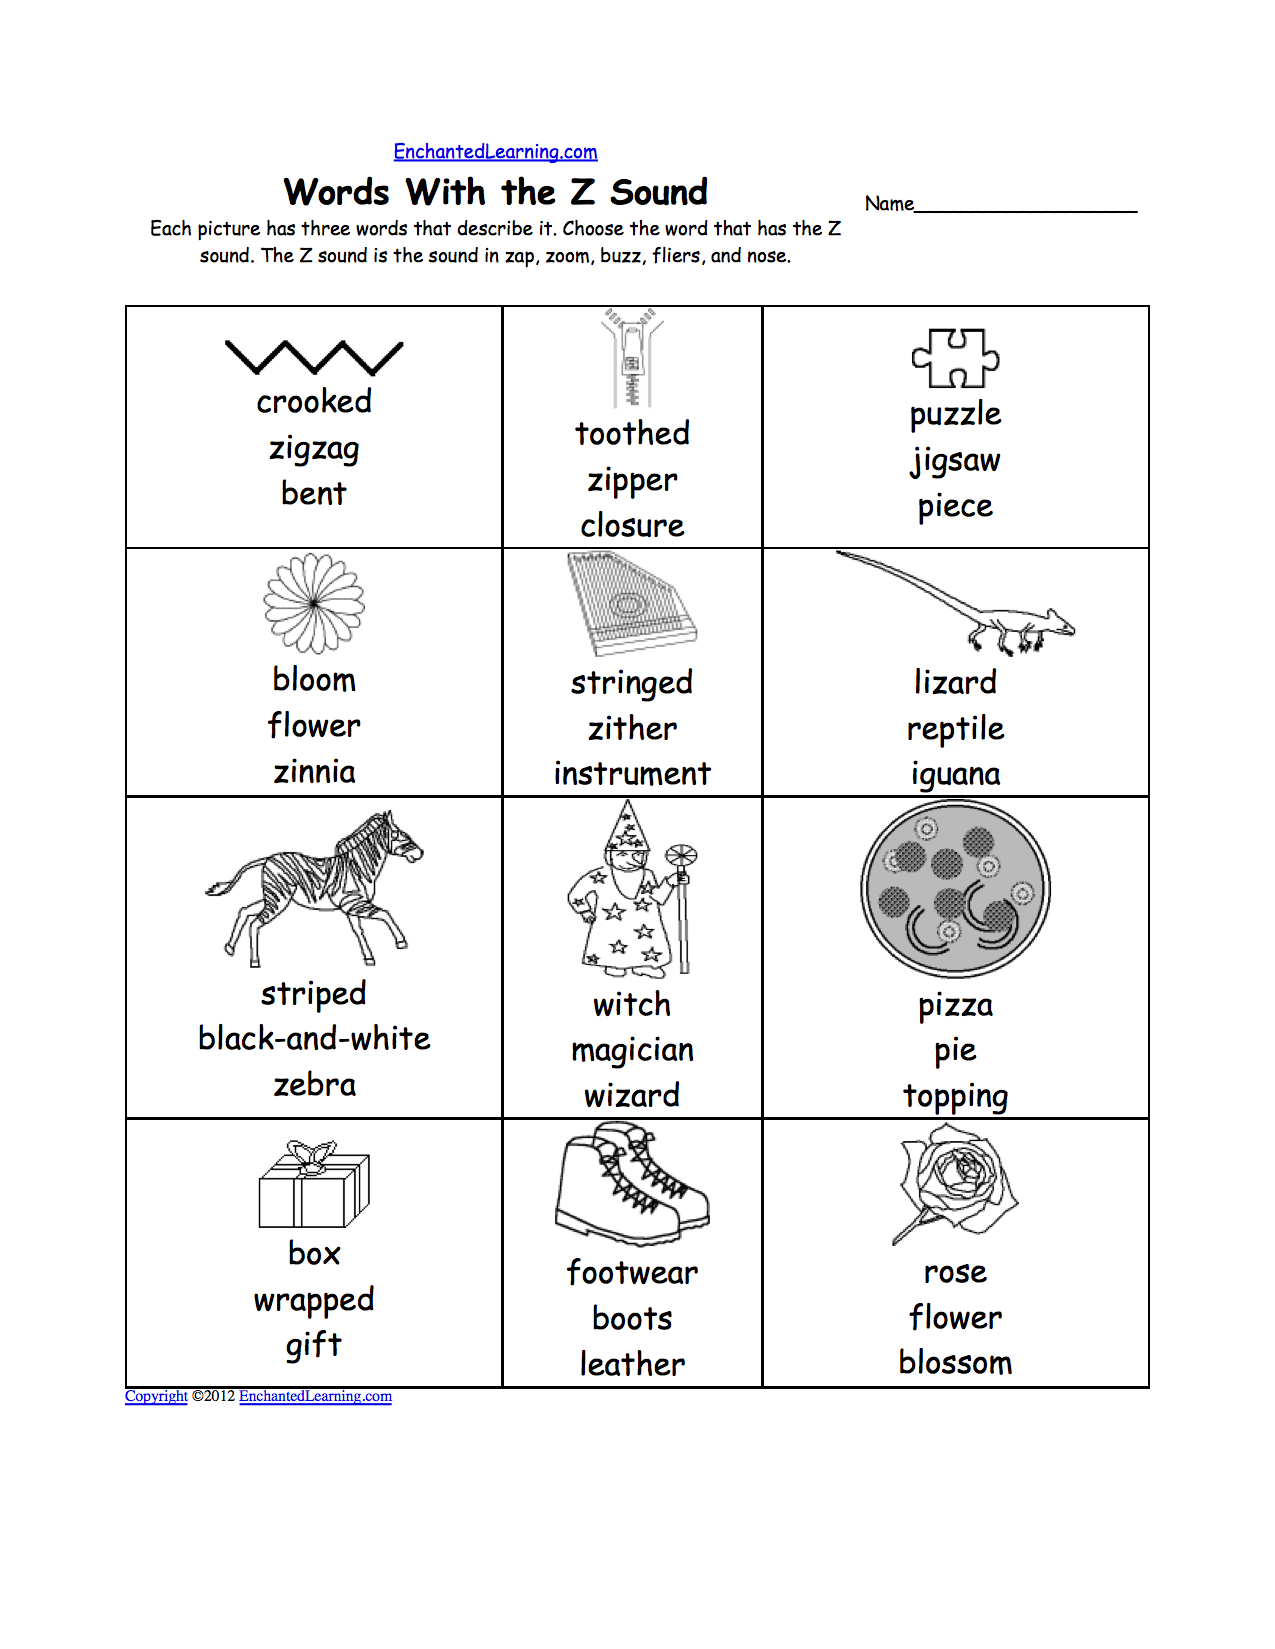 Aldiablosus  Pretty Phonics Worksheets Multiple Choice Worksheets To Print  With Remarkable Phonics Worksheets Multiple Choice Worksheets To Print  Enchantedlearningcom With Enchanting Susan B Anthony Worksheet Also Worksheet On Combining Like Terms In Addition Get To Know Your Students Worksheet And Negative Prefixes Worksheet As Well As Simplify Expression Worksheet Additionally Fractions And Mixed Numbers Worksheets From Enchantedlearningcom With Aldiablosus  Remarkable Phonics Worksheets Multiple Choice Worksheets To Print  With Enchanting Phonics Worksheets Multiple Choice Worksheets To Print  Enchantedlearningcom And Pretty Susan B Anthony Worksheet Also Worksheet On Combining Like Terms In Addition Get To Know Your Students Worksheet From Enchantedlearningcom